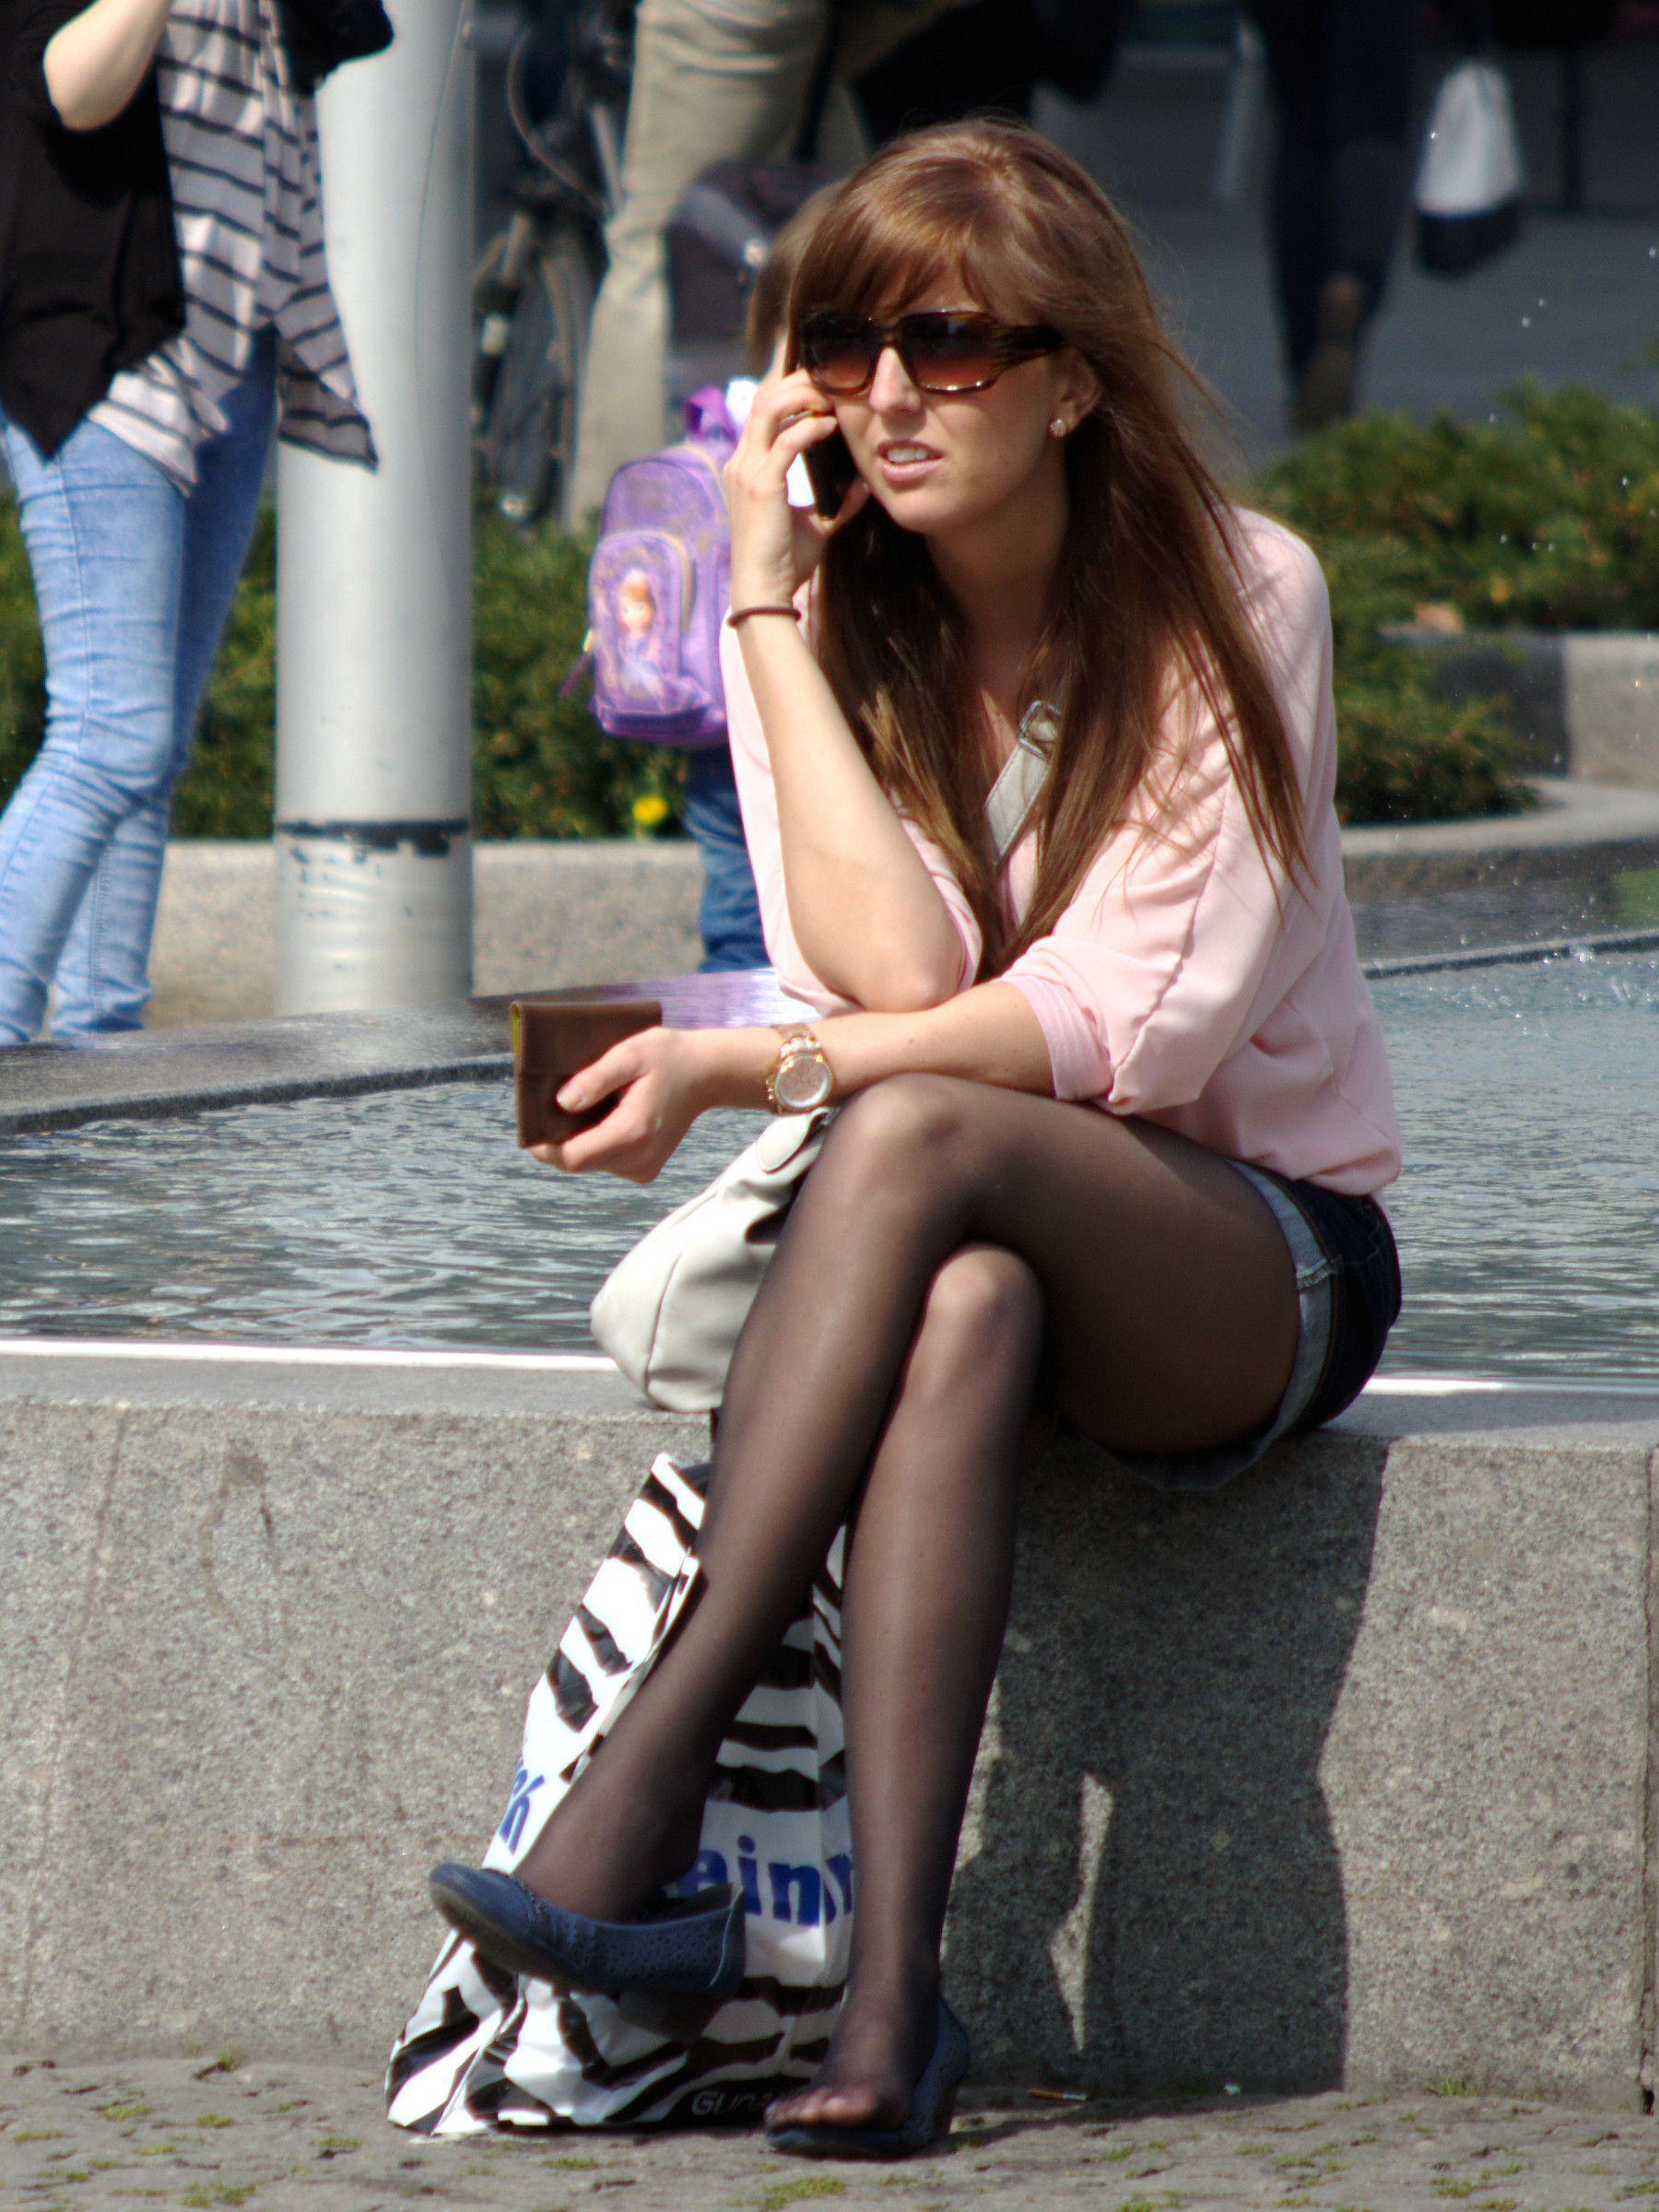 Girls With Legs | In pantyhose